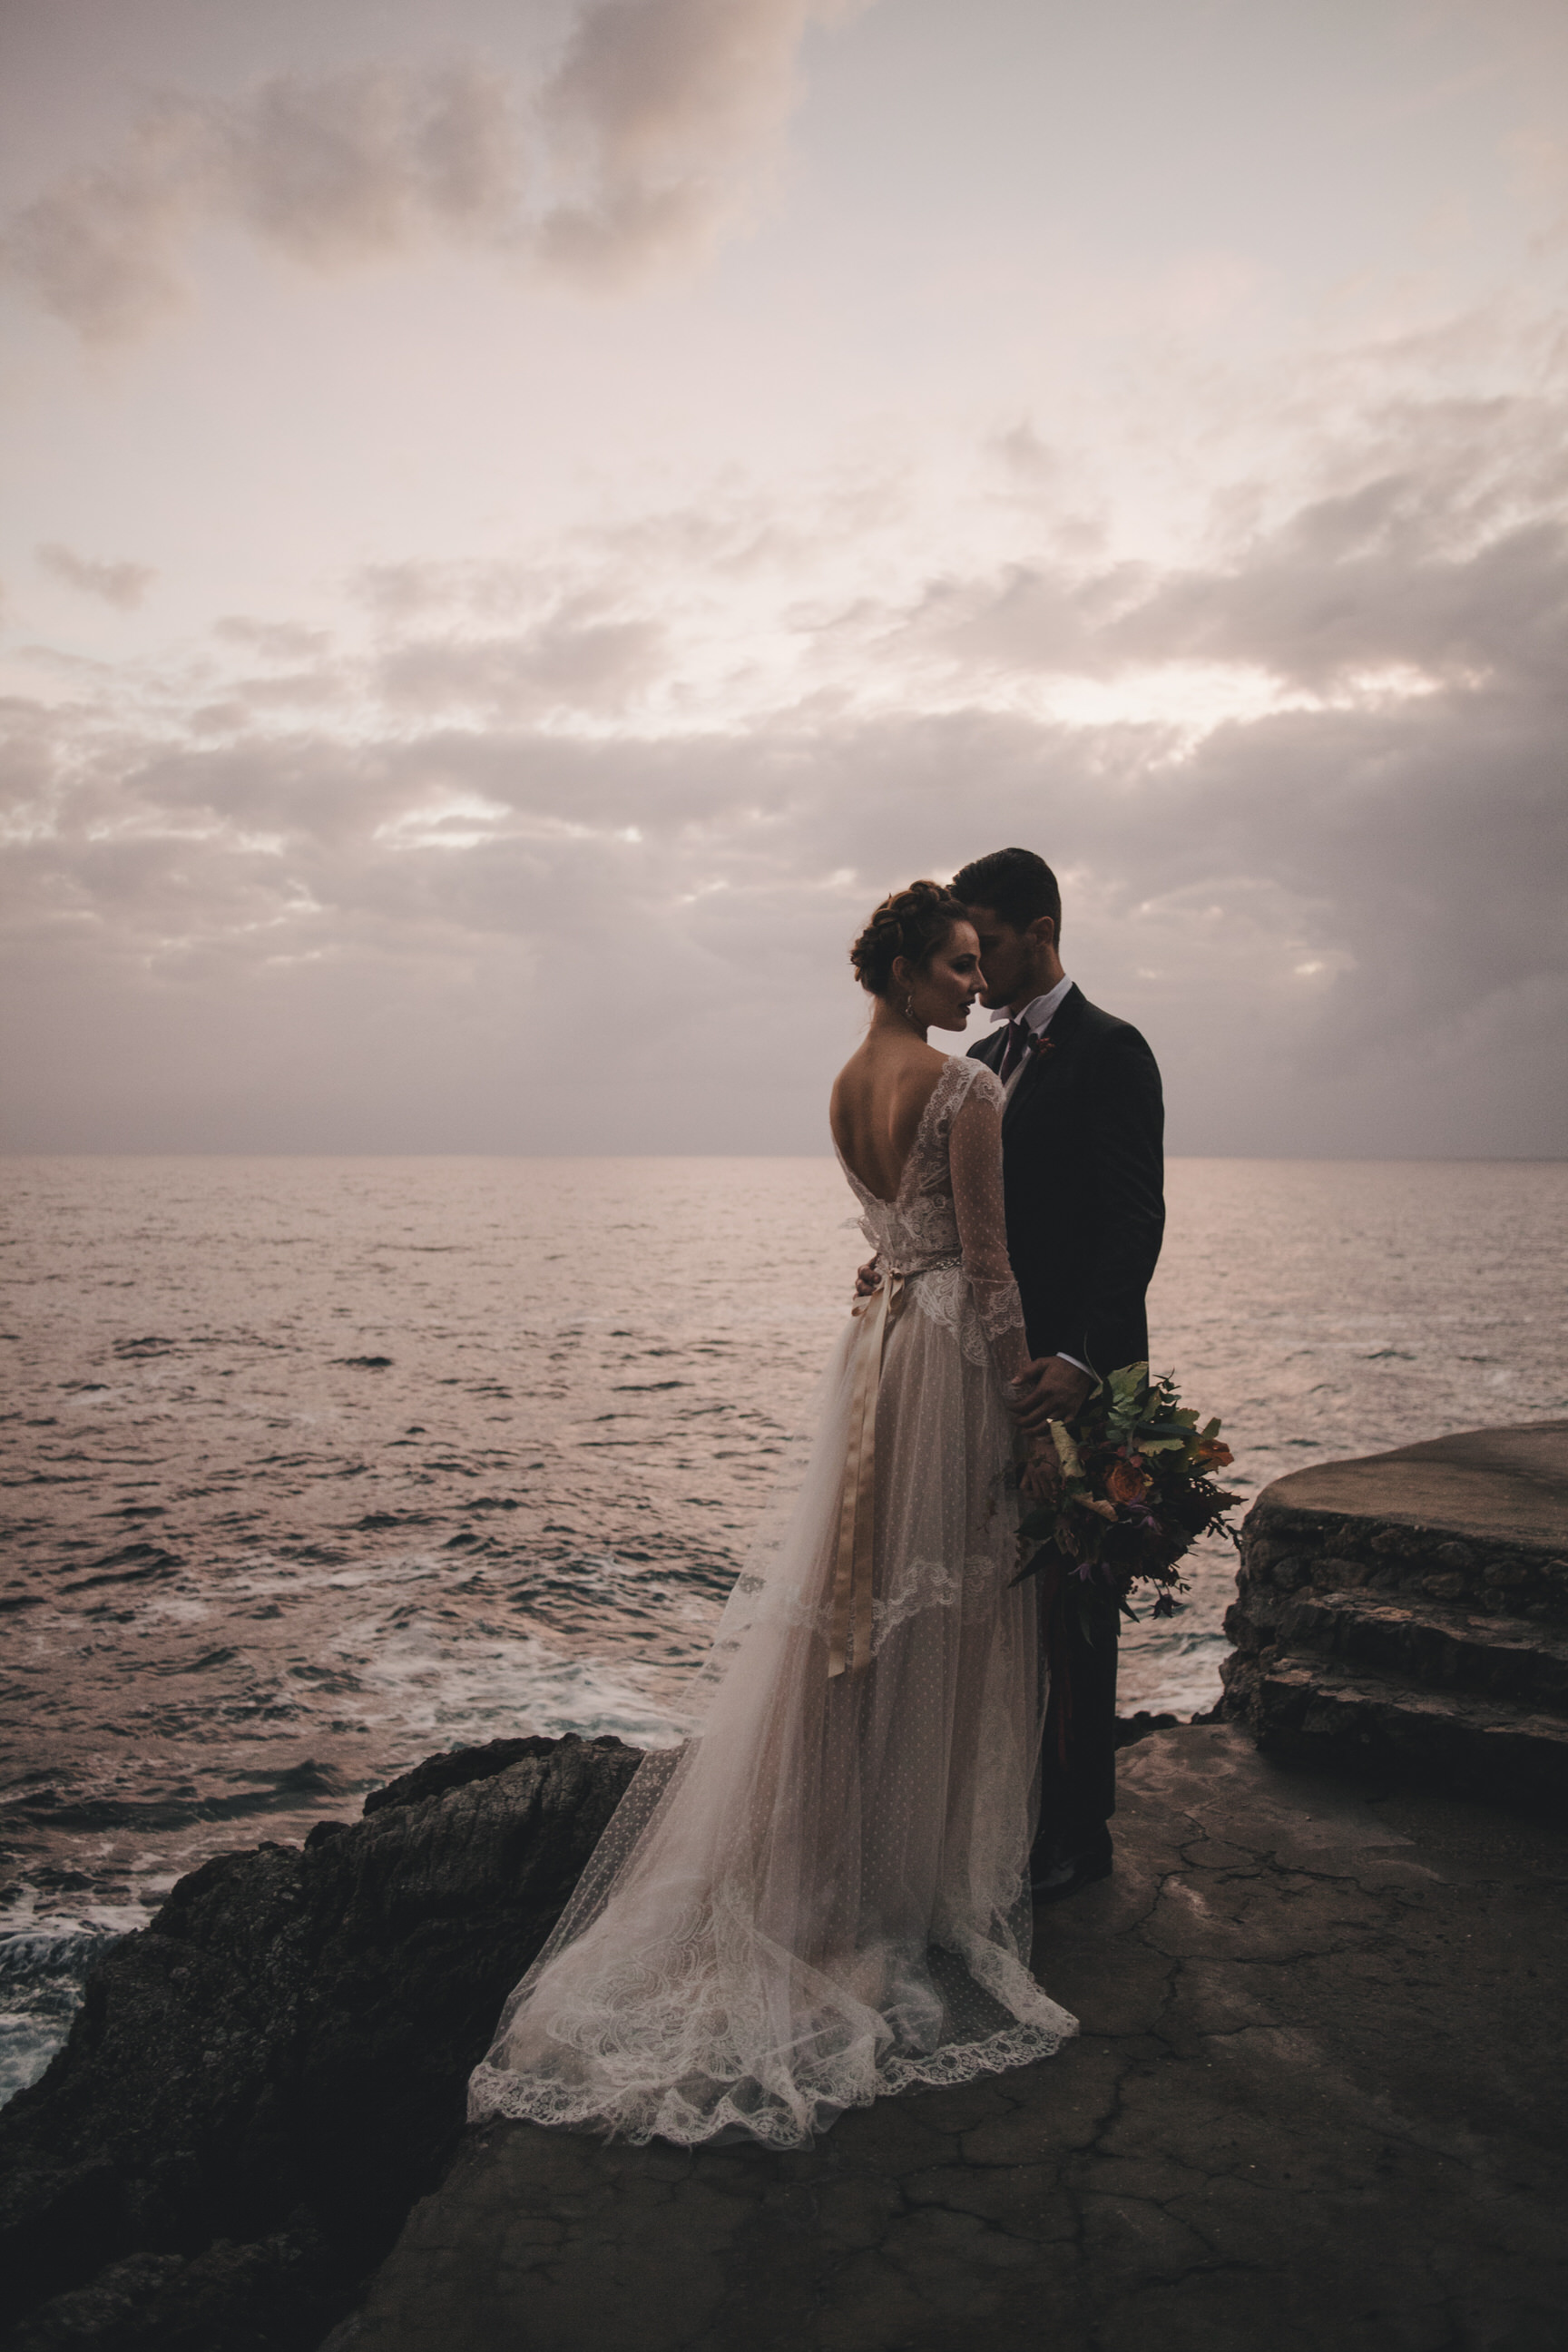 bride and groom's portrait standing by the sea at sunset time